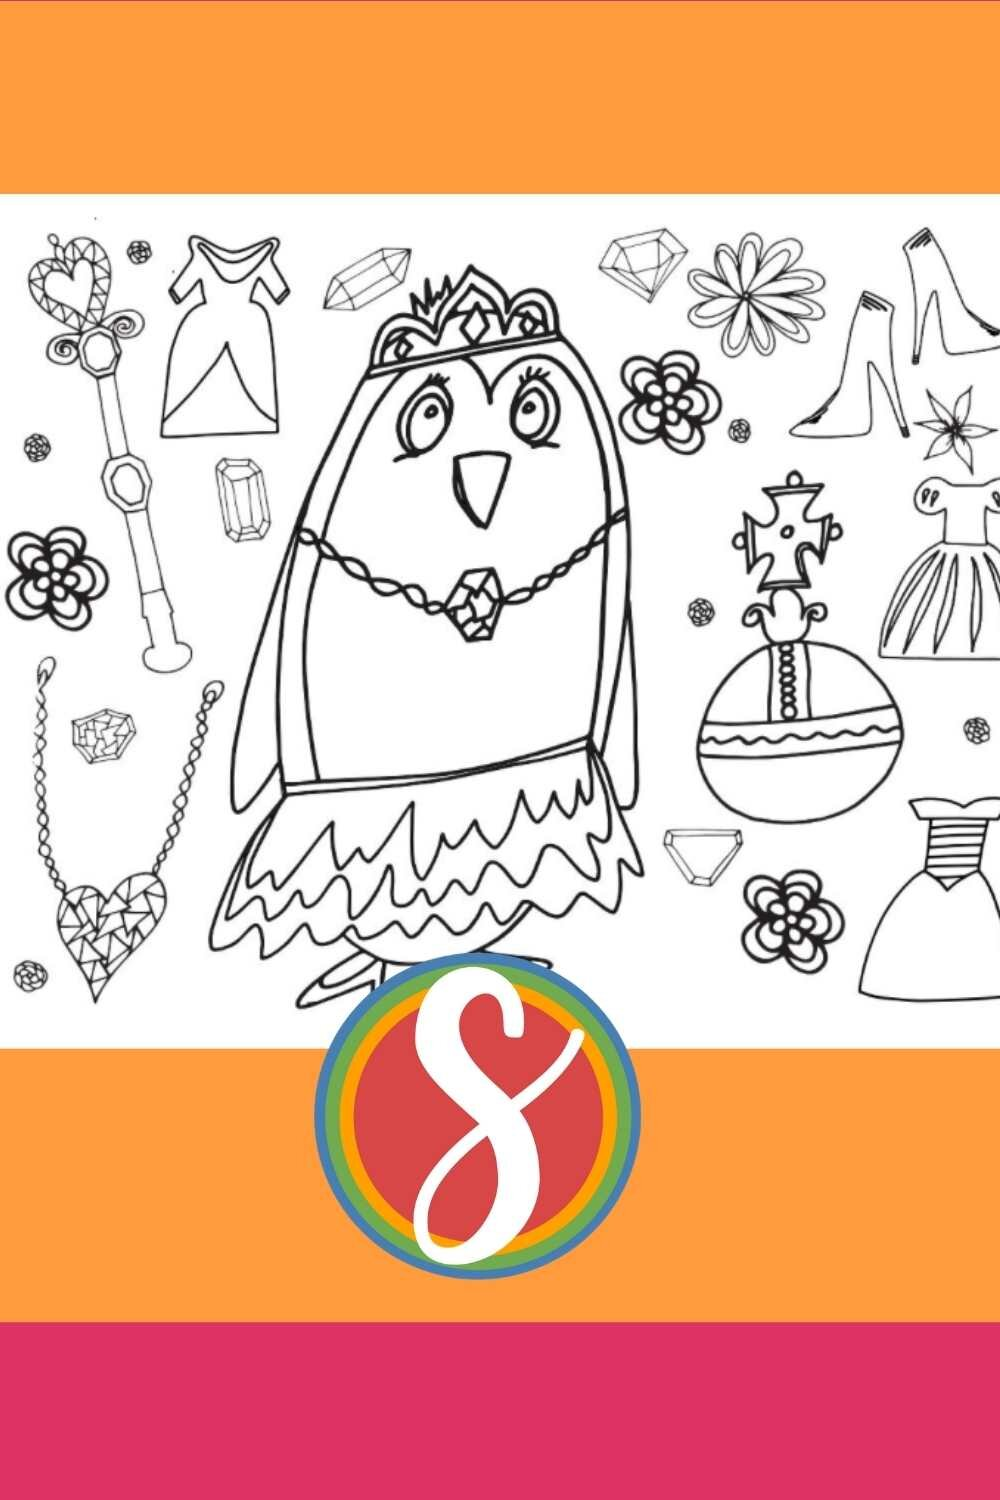 A Pretty Penguin Princess Coloring Page free to print and color from Stevie Doodles